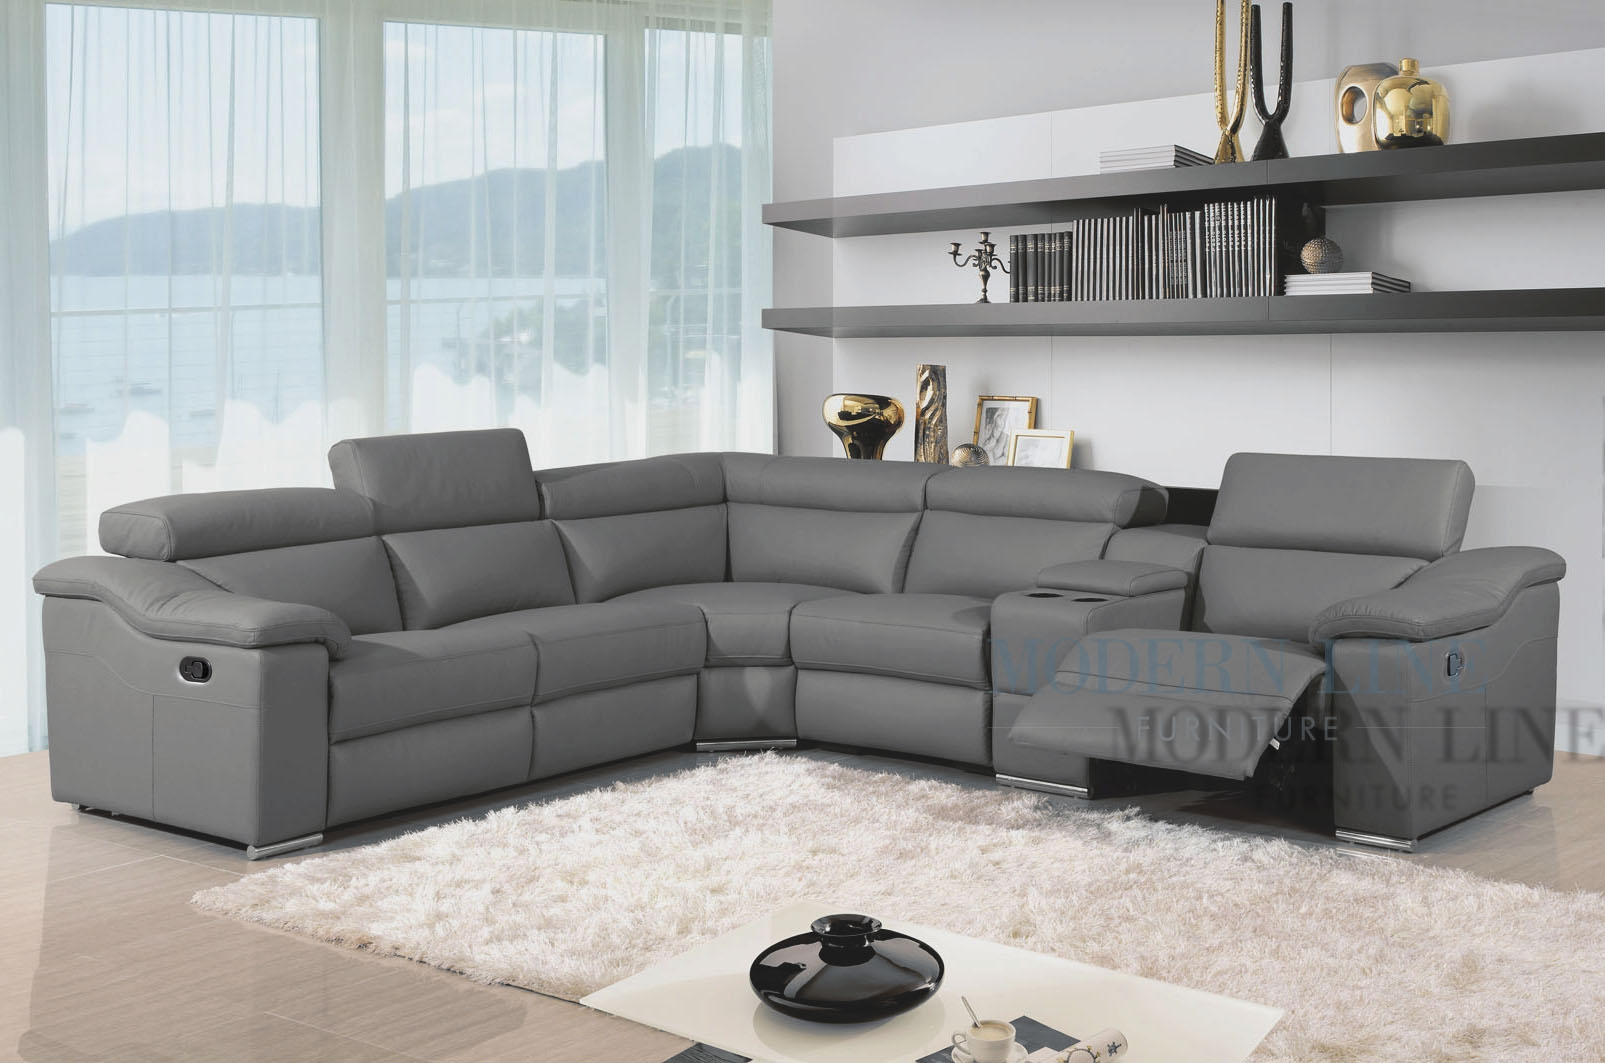 Decor Rooms To Go Cindy Crawford Cindy Crawford Rooms To Go Pertaining To Cindy Crawford Sofas (View 4 of 15)